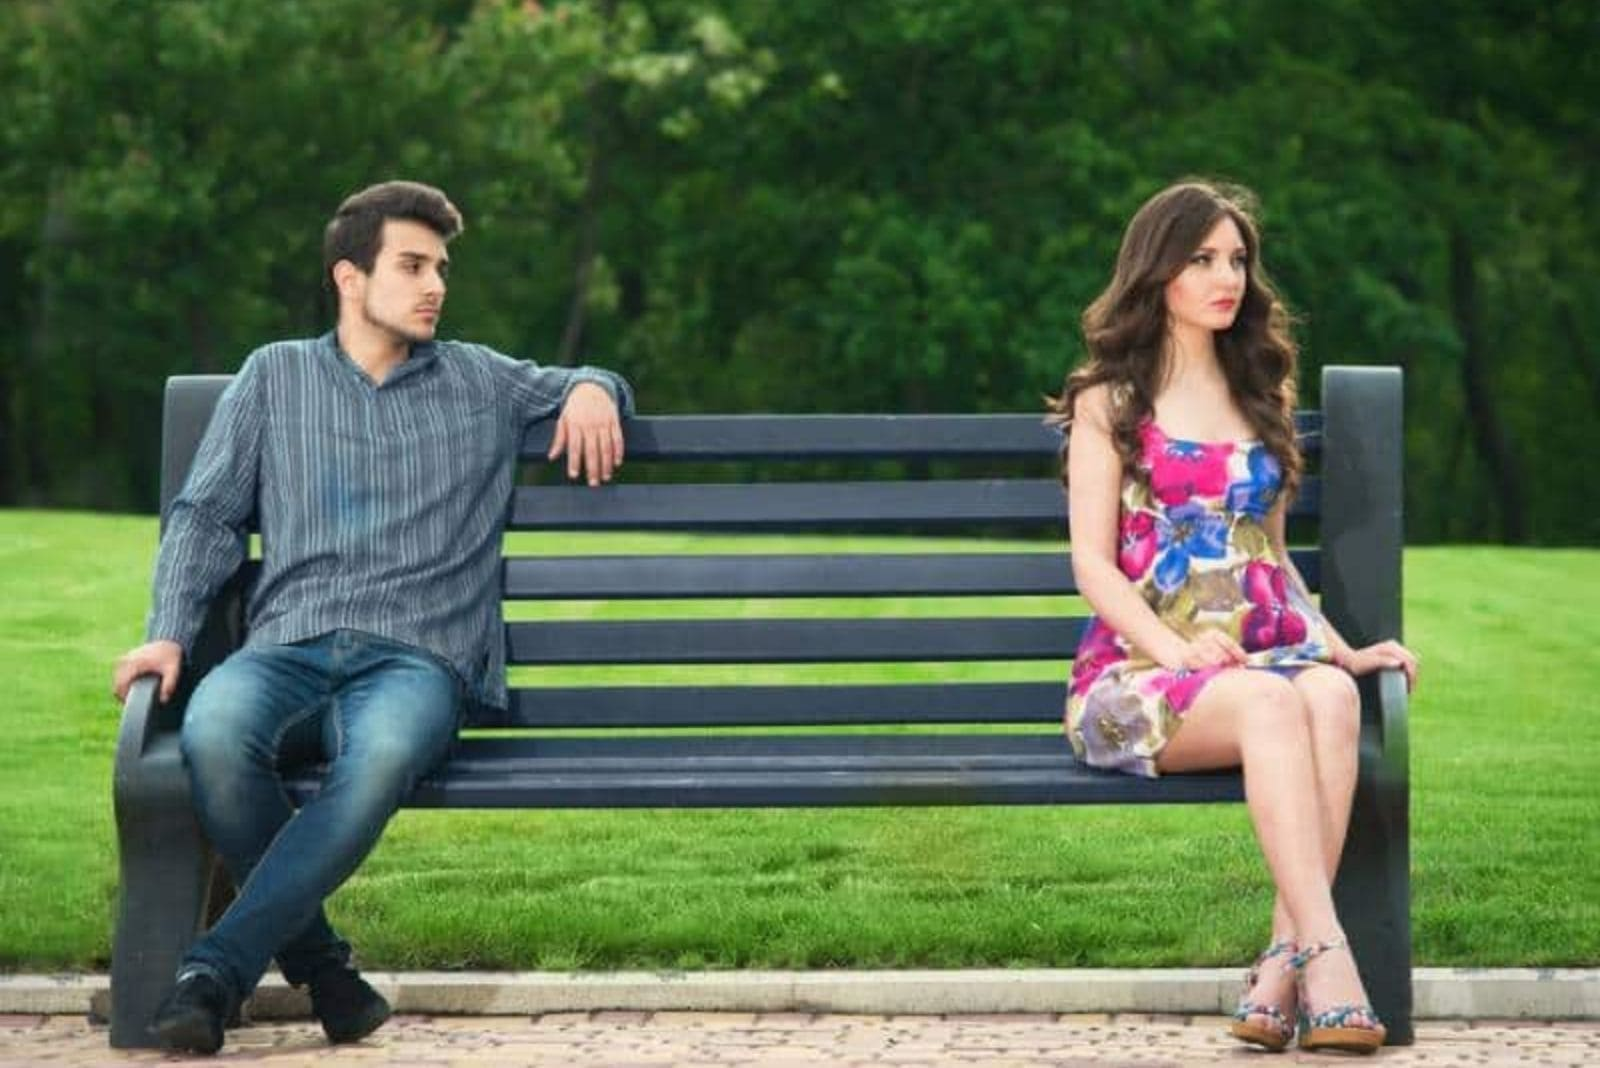 a man and a woman sitting on a bench